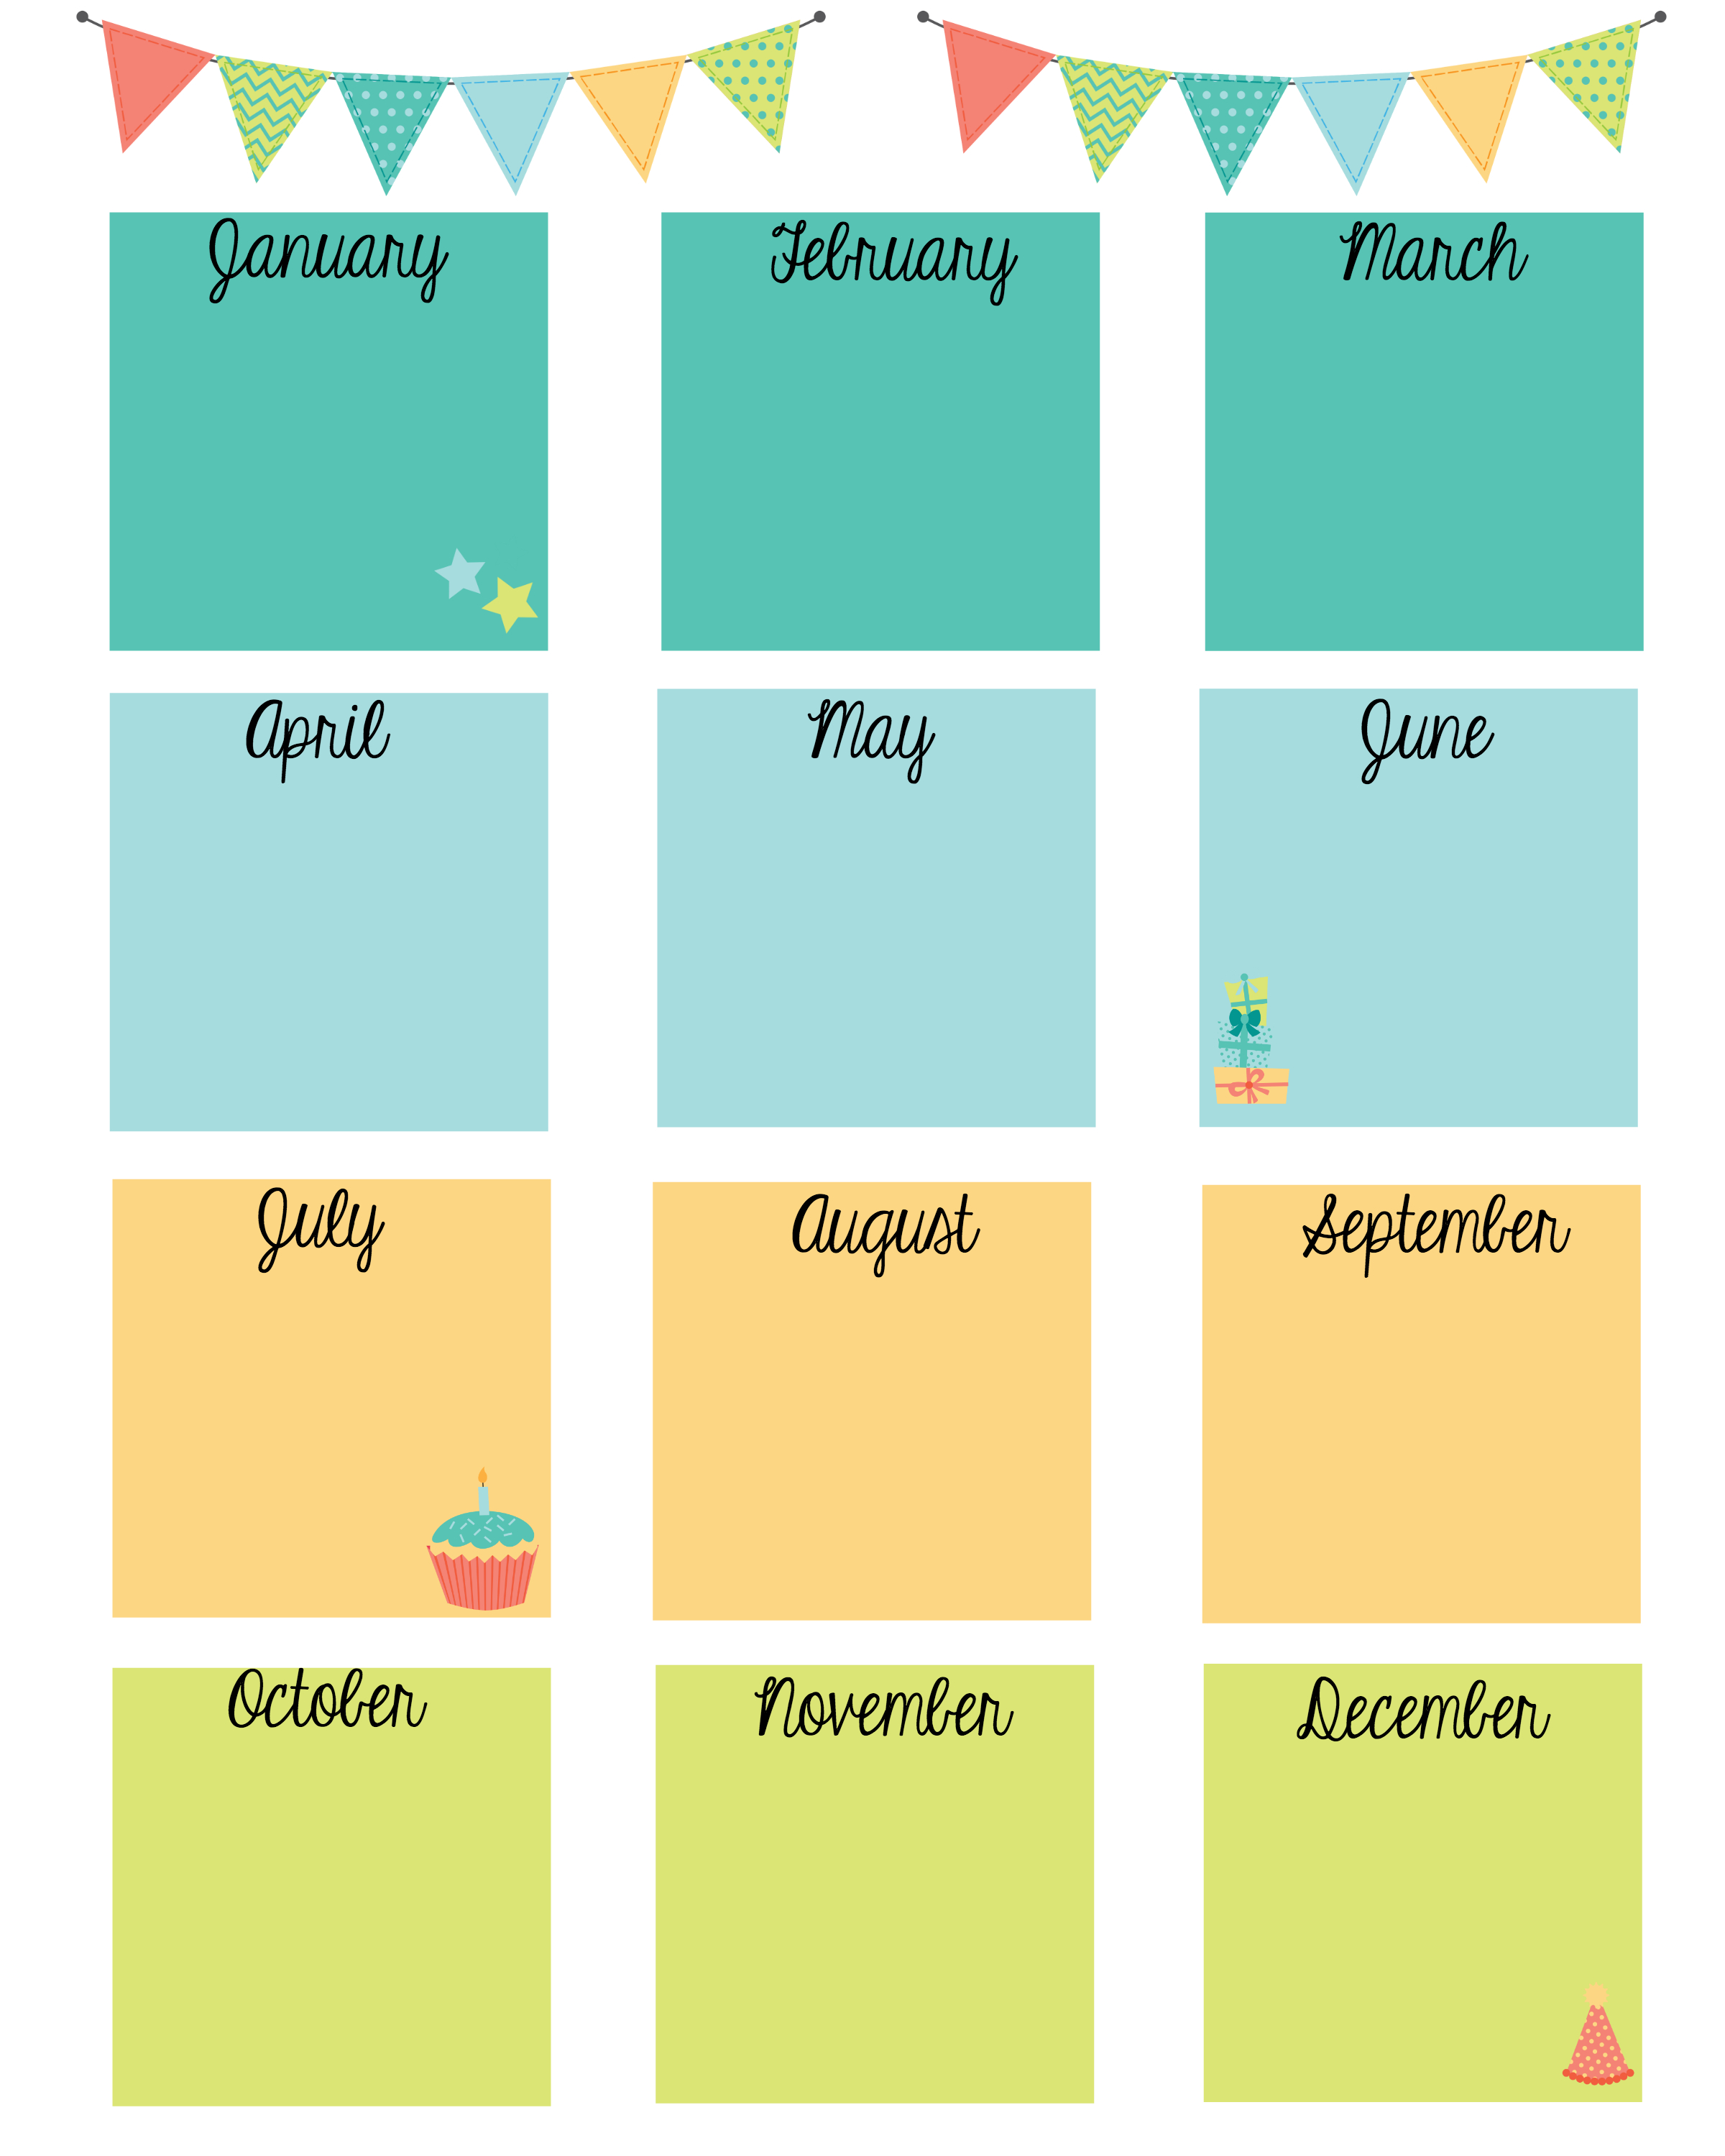 Keep In Touch With Friends With A Birthday Calendar | Calendars within Blank Monthly Birthday Calendars